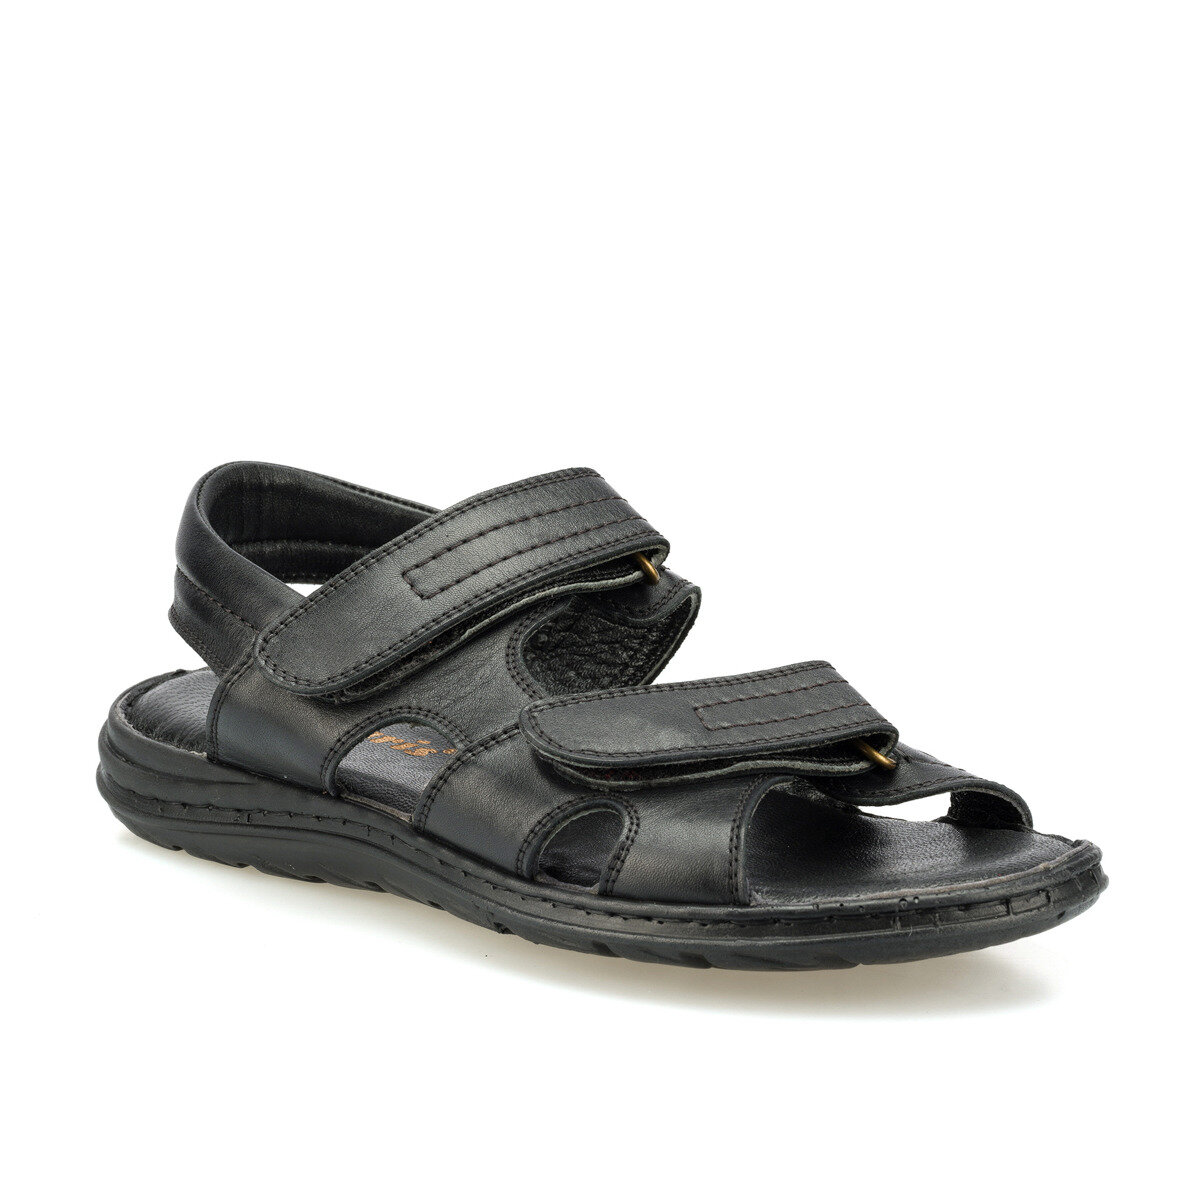 FLO 160267.M Black Male Sandals Polaris